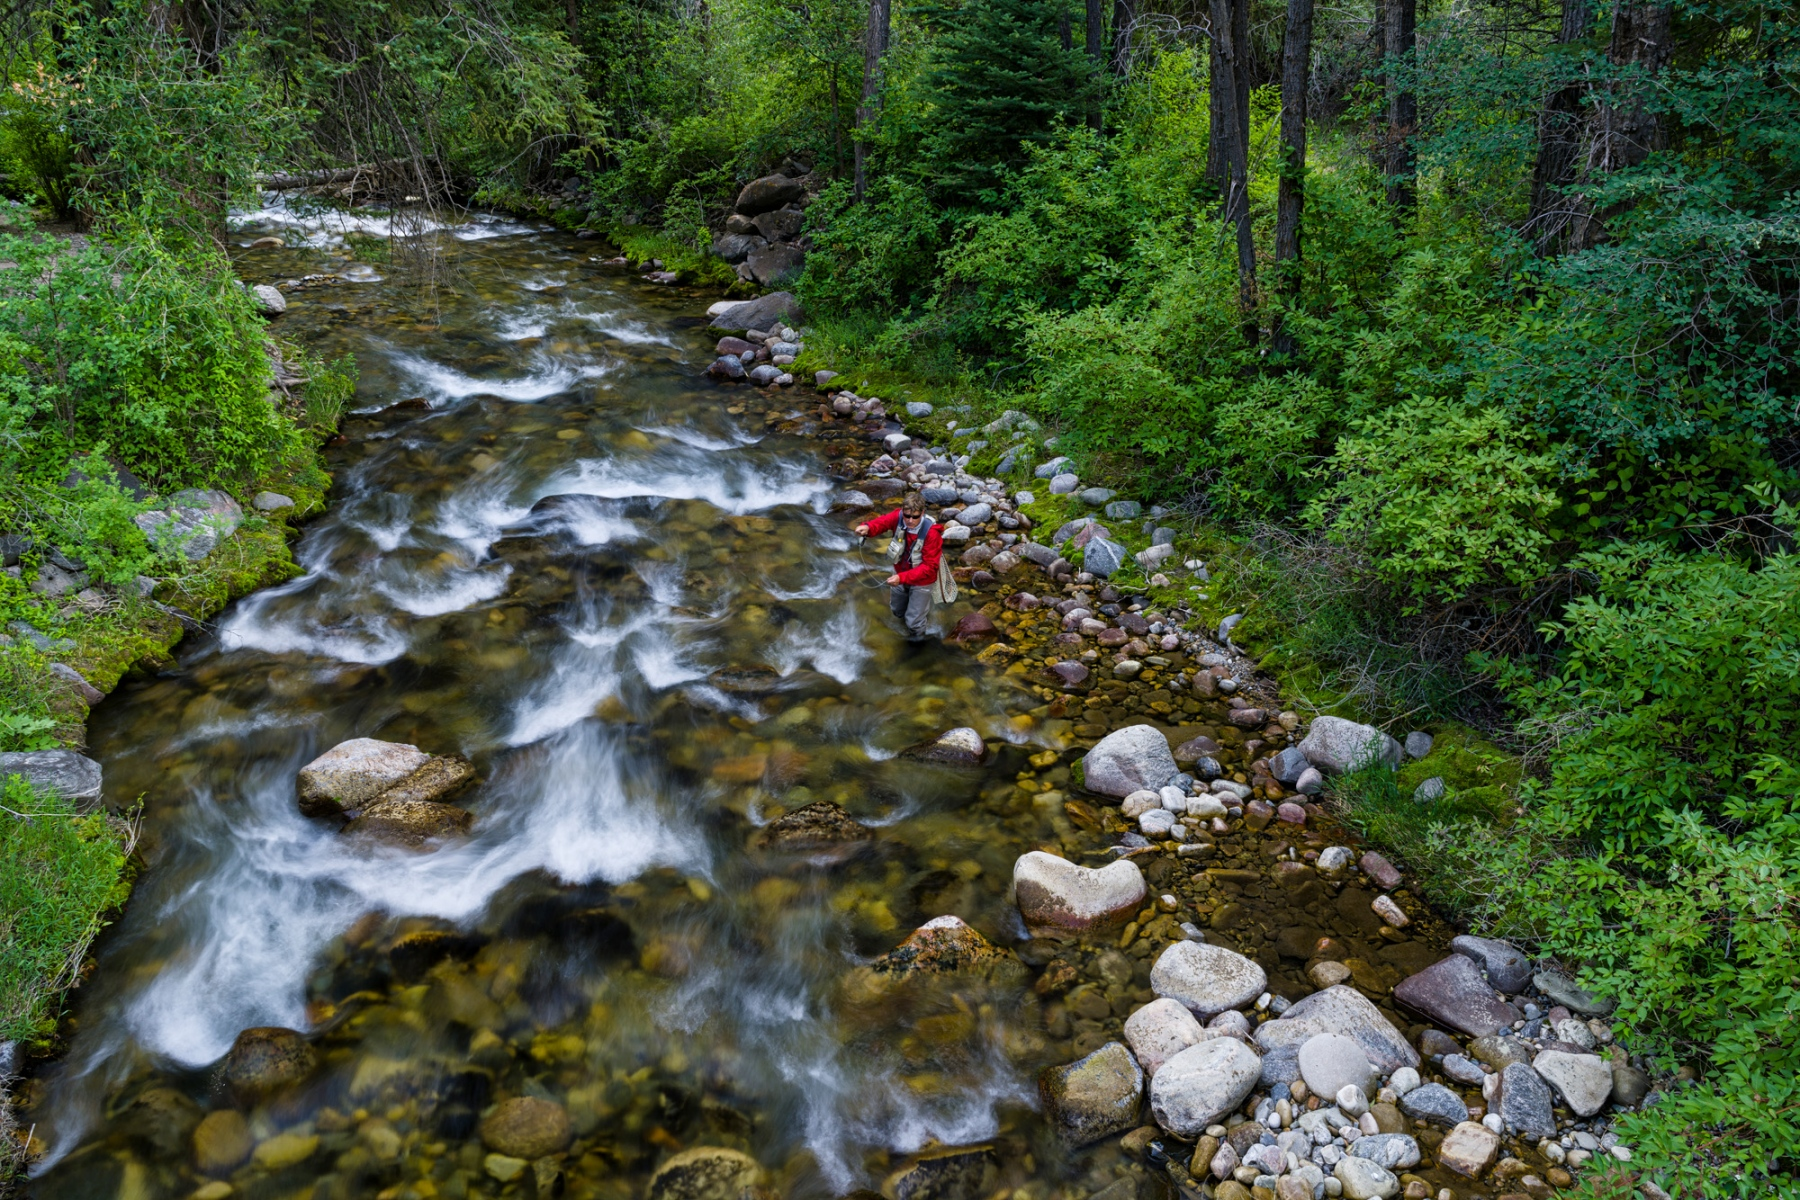 Man Fly Fishing in Crystal Clear Creek